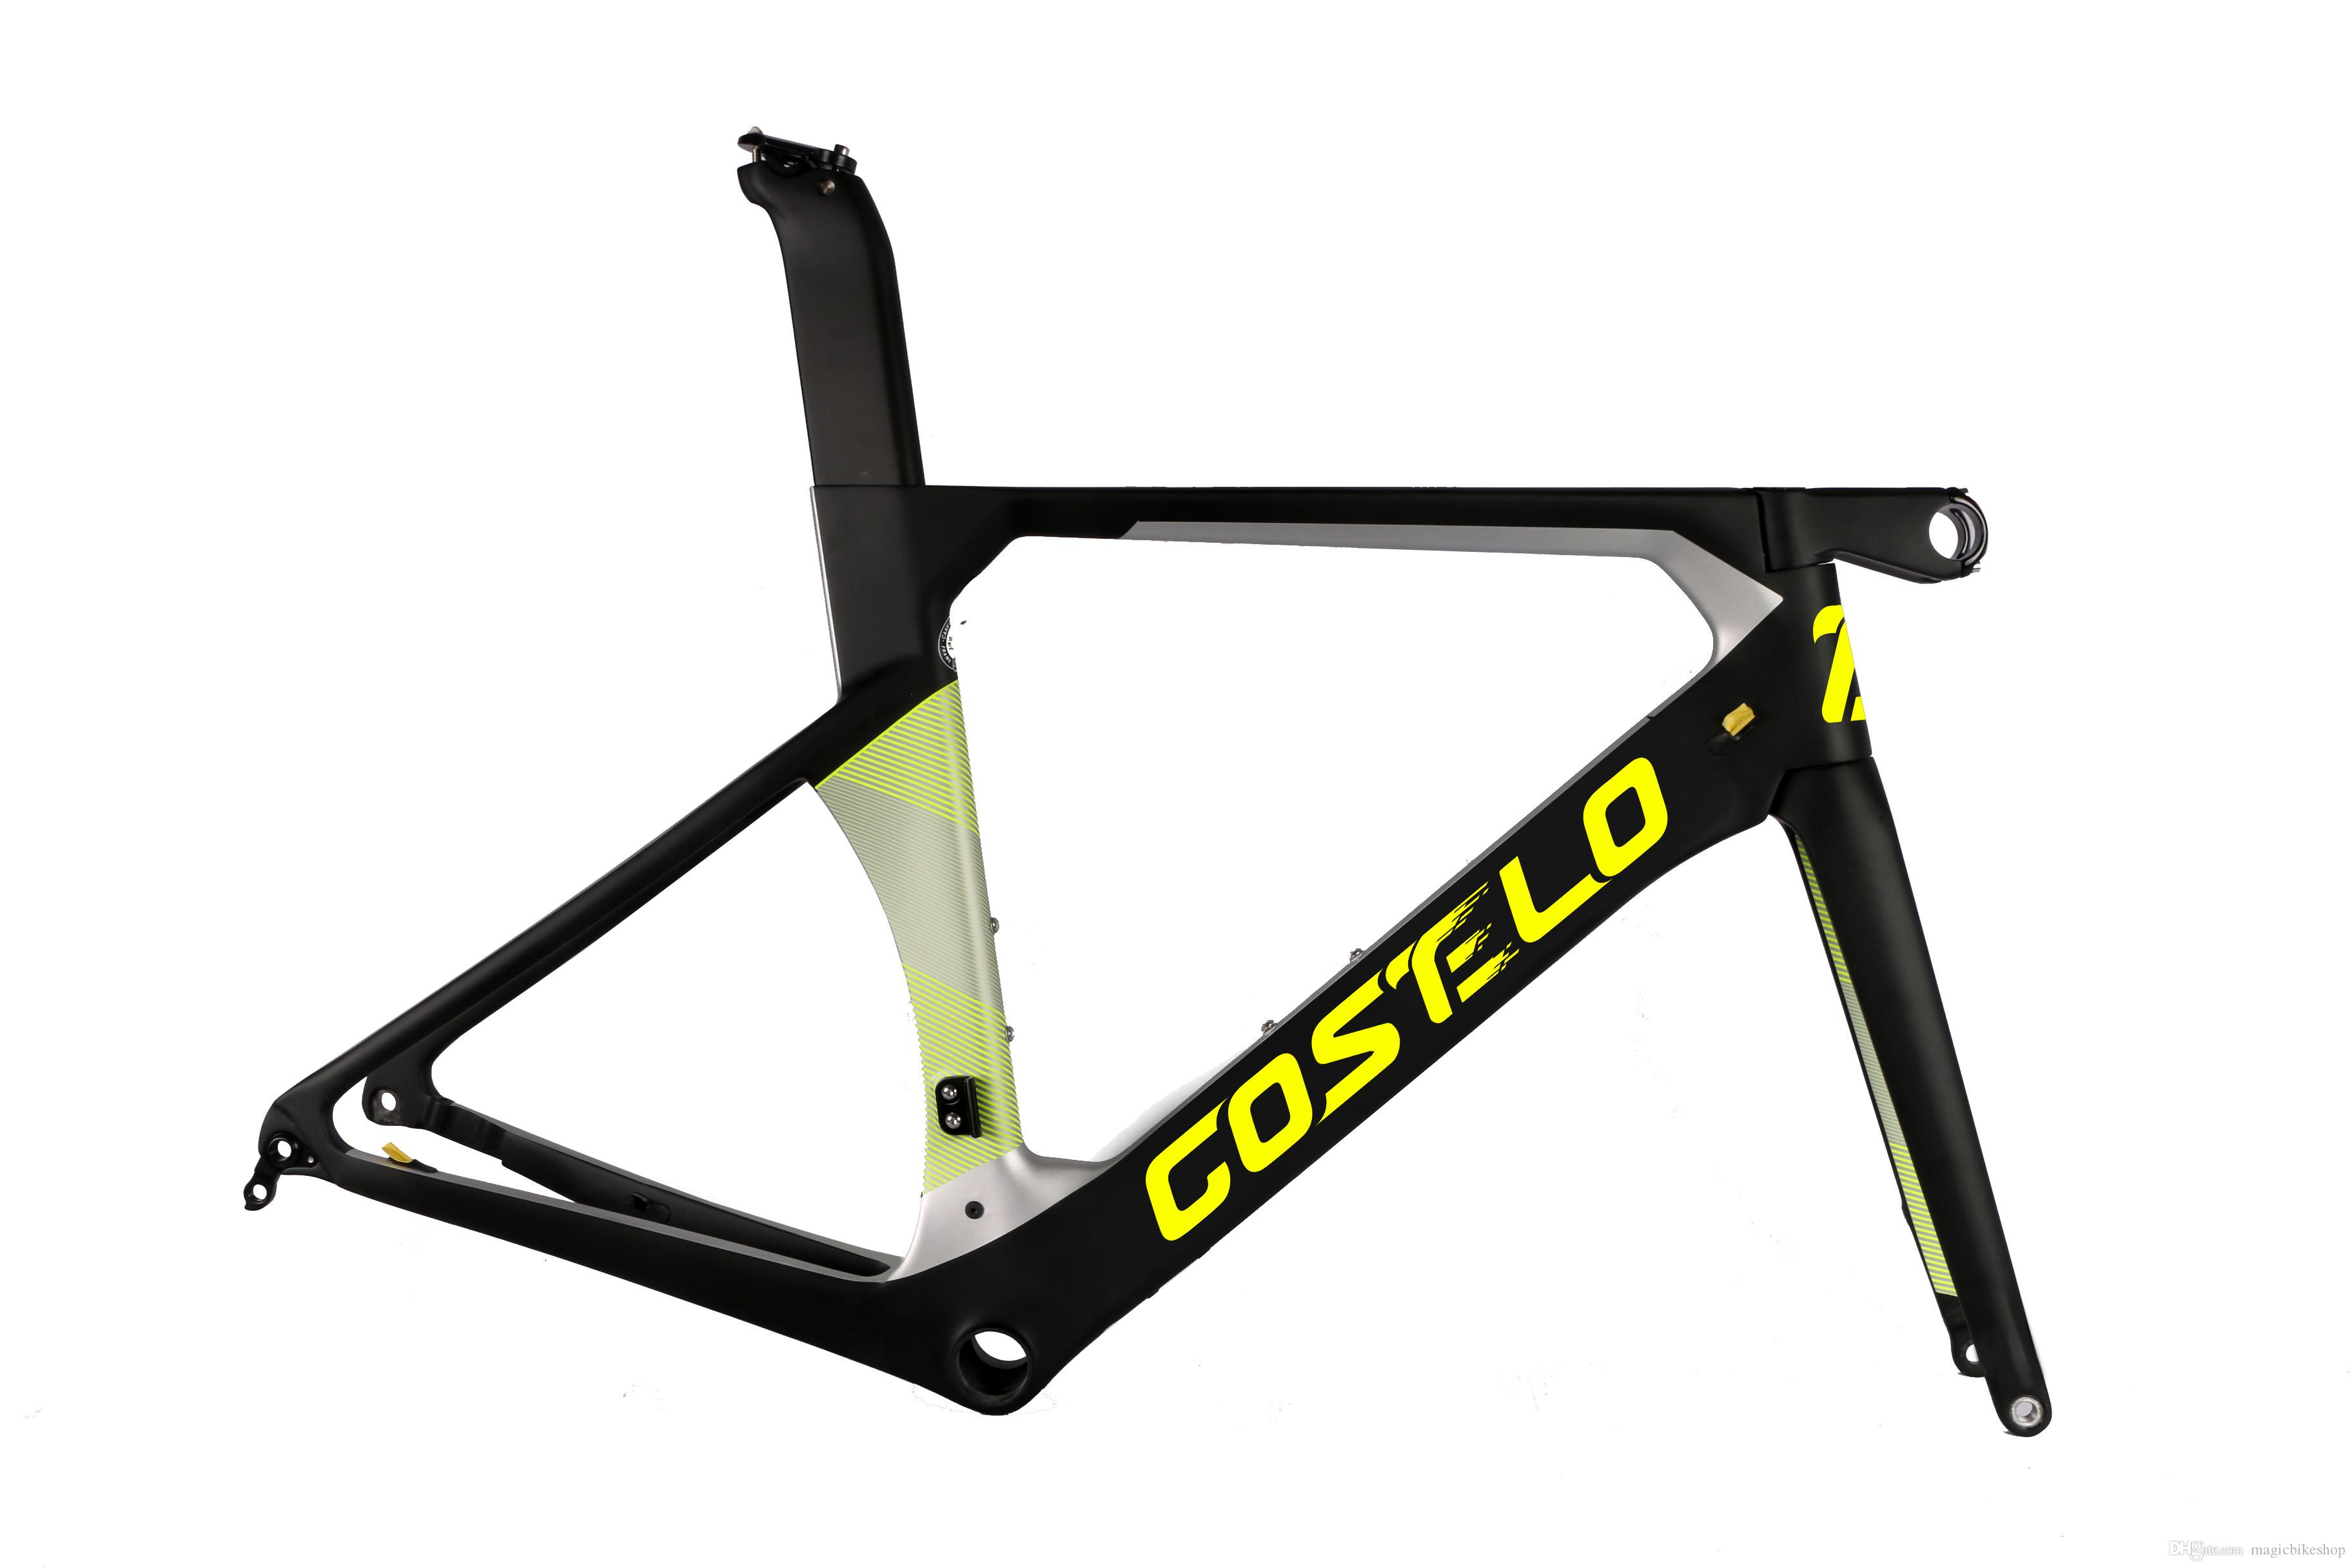 2019 costelo Aeromachine monocoques DISC Road full carbon bicycle frame,stem,fork with seatpost thru axle bici velo free shipping